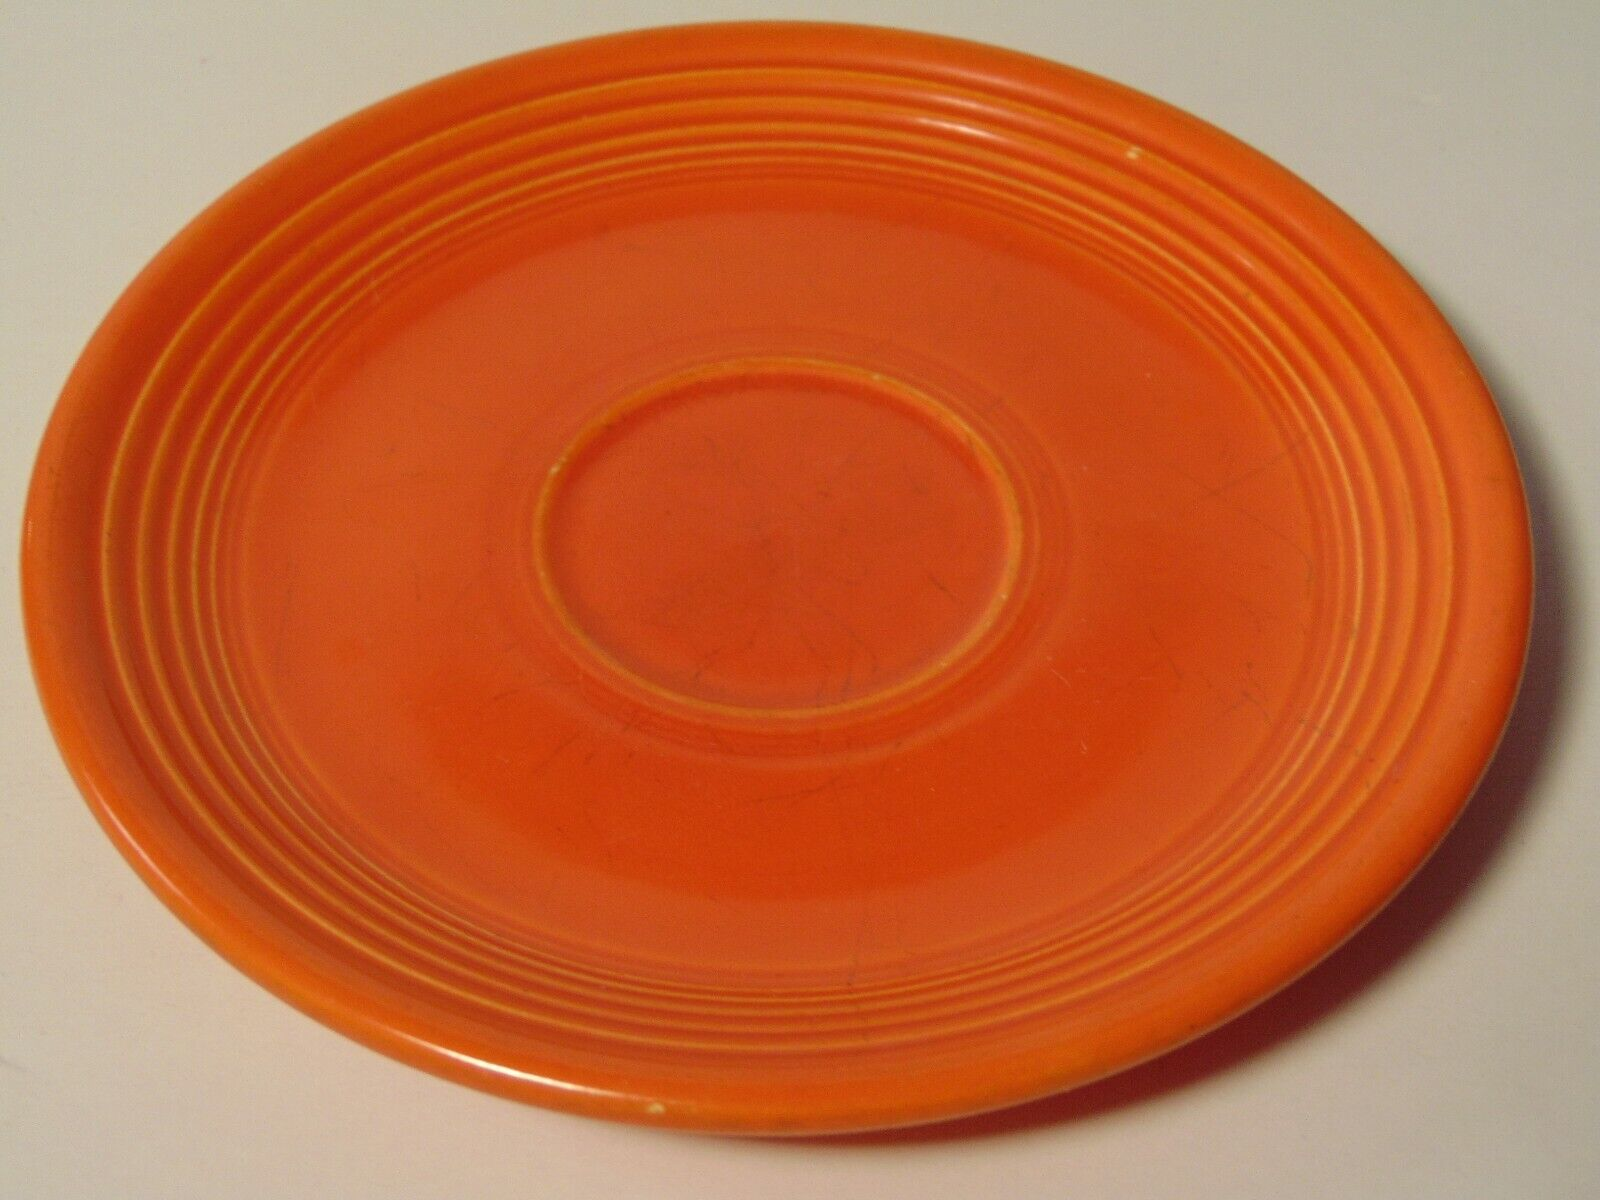 s l1600 - Old Vtg 1936 RED ORANGE RADIOACTIVE FIESTA SAUCER PLATE GEIGER COUNTER READING T